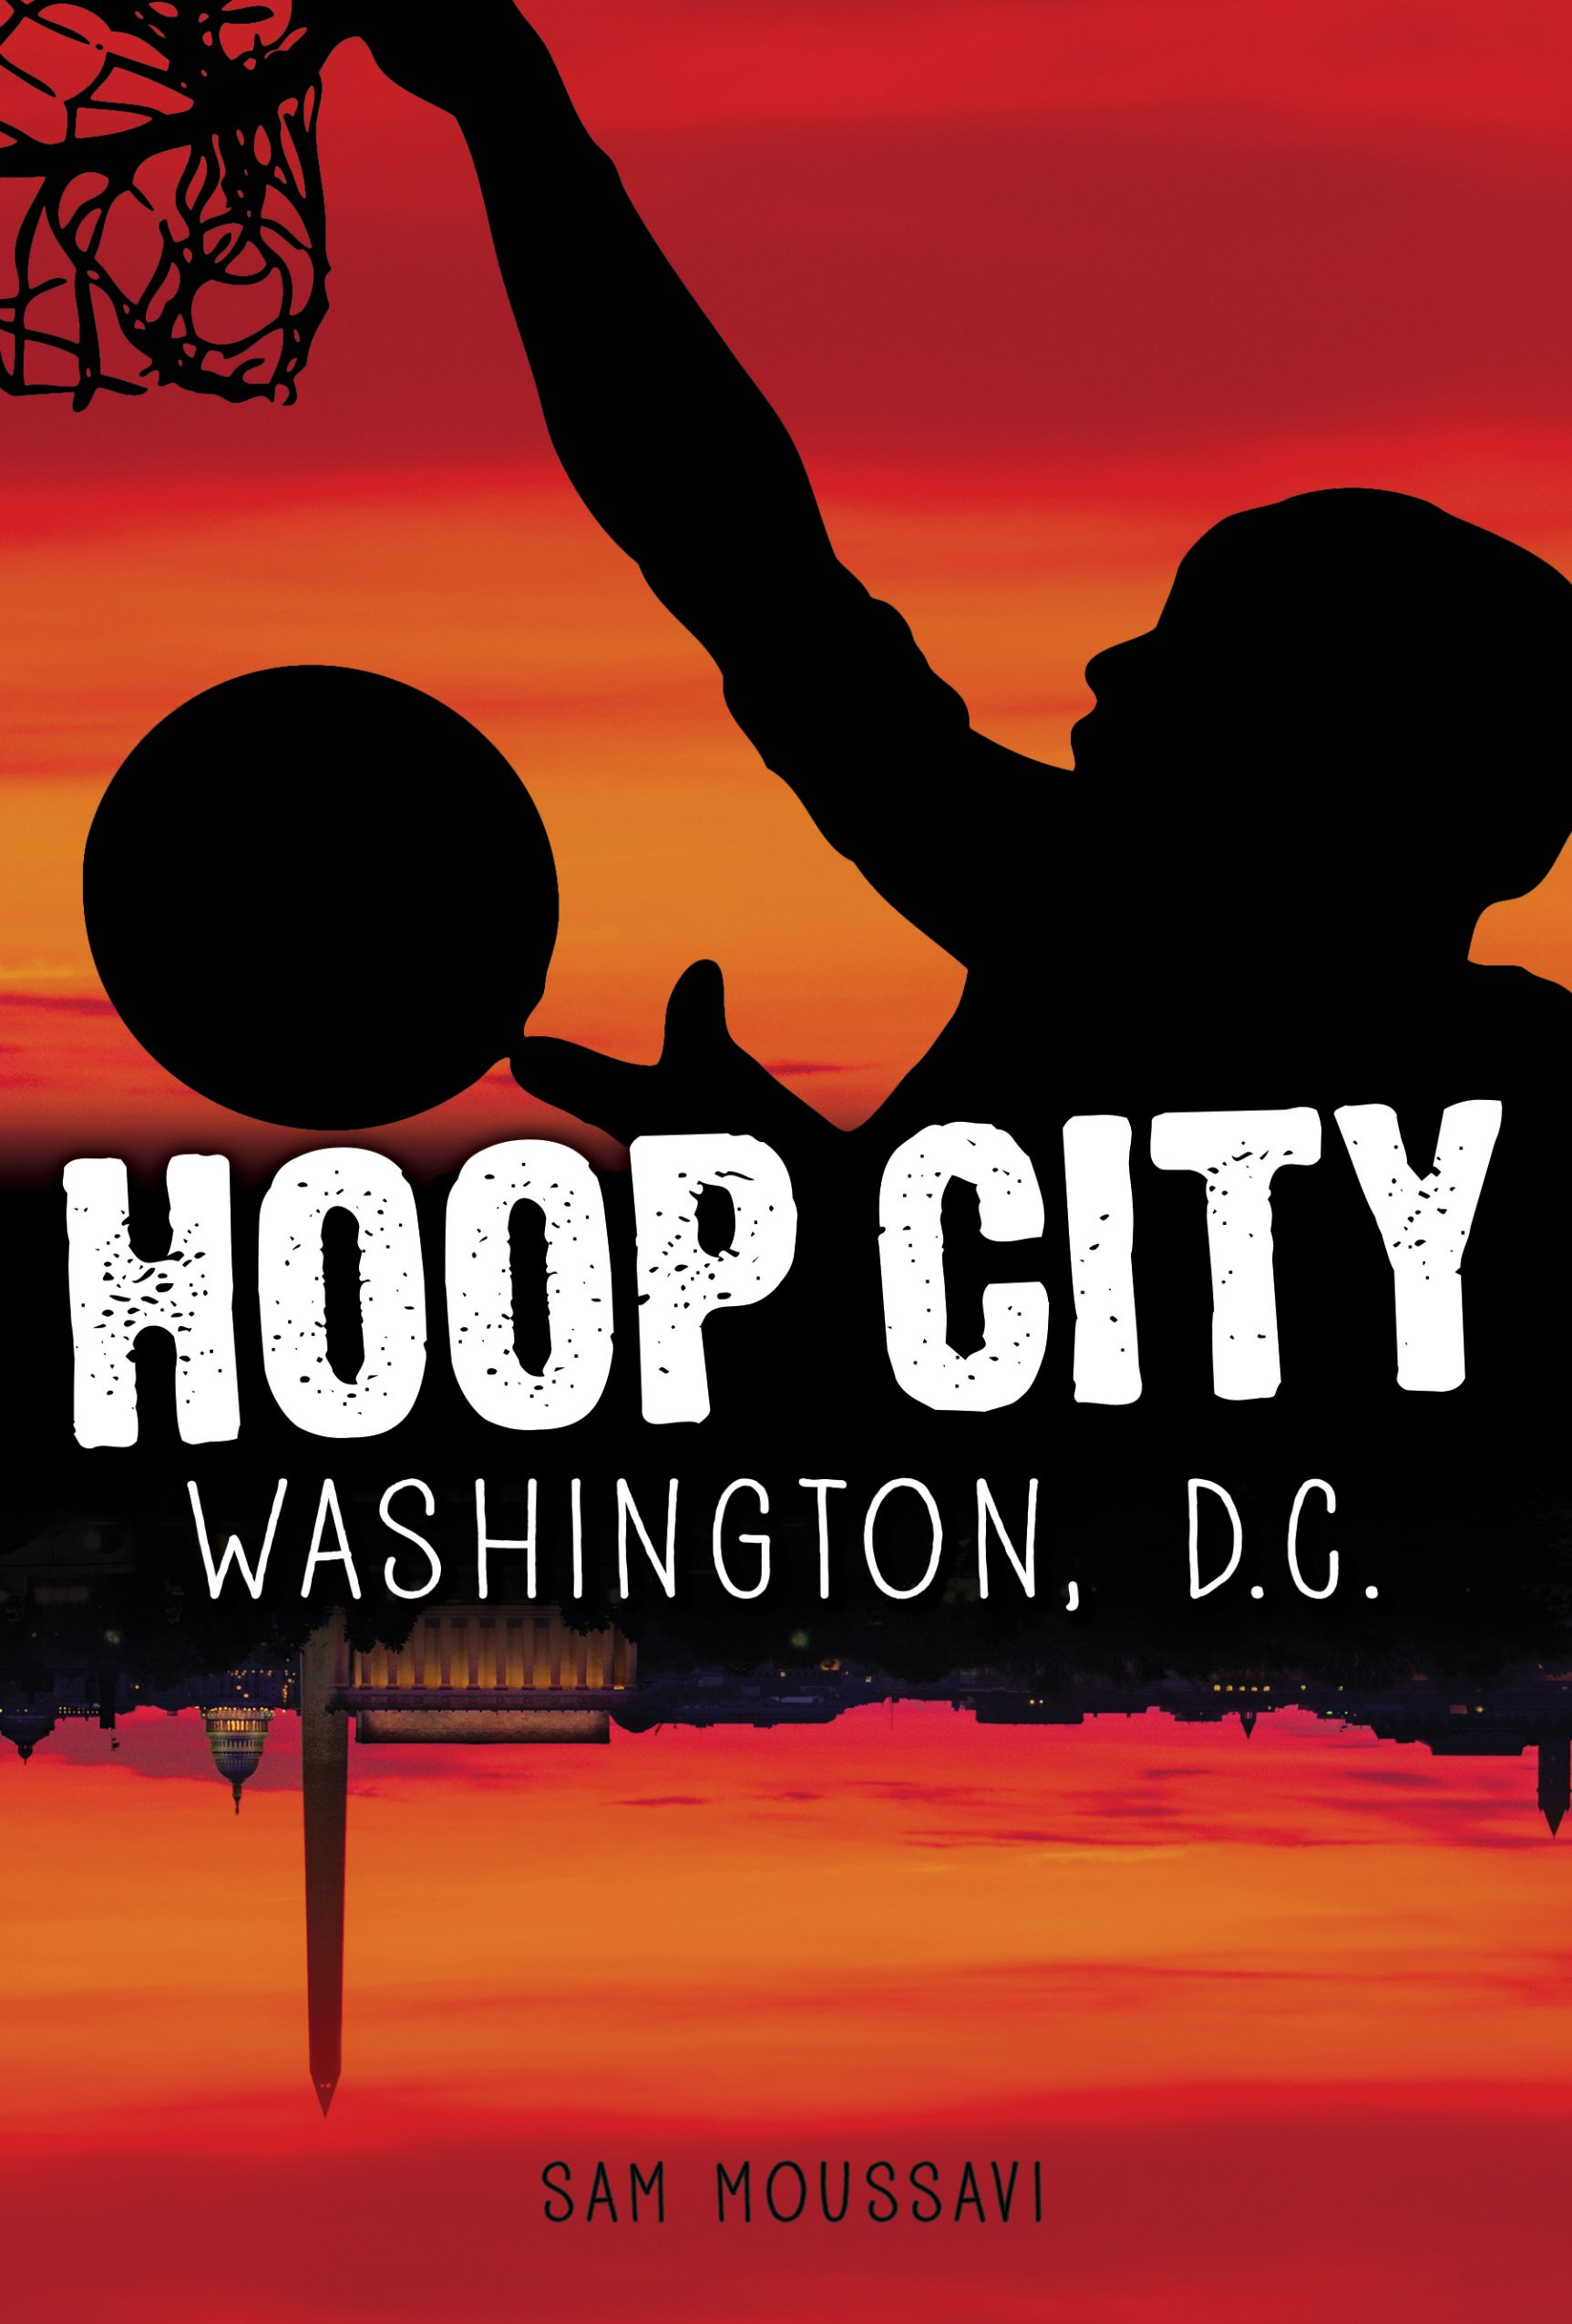 Read Online Washington, D.C. (Hoop City) PDF